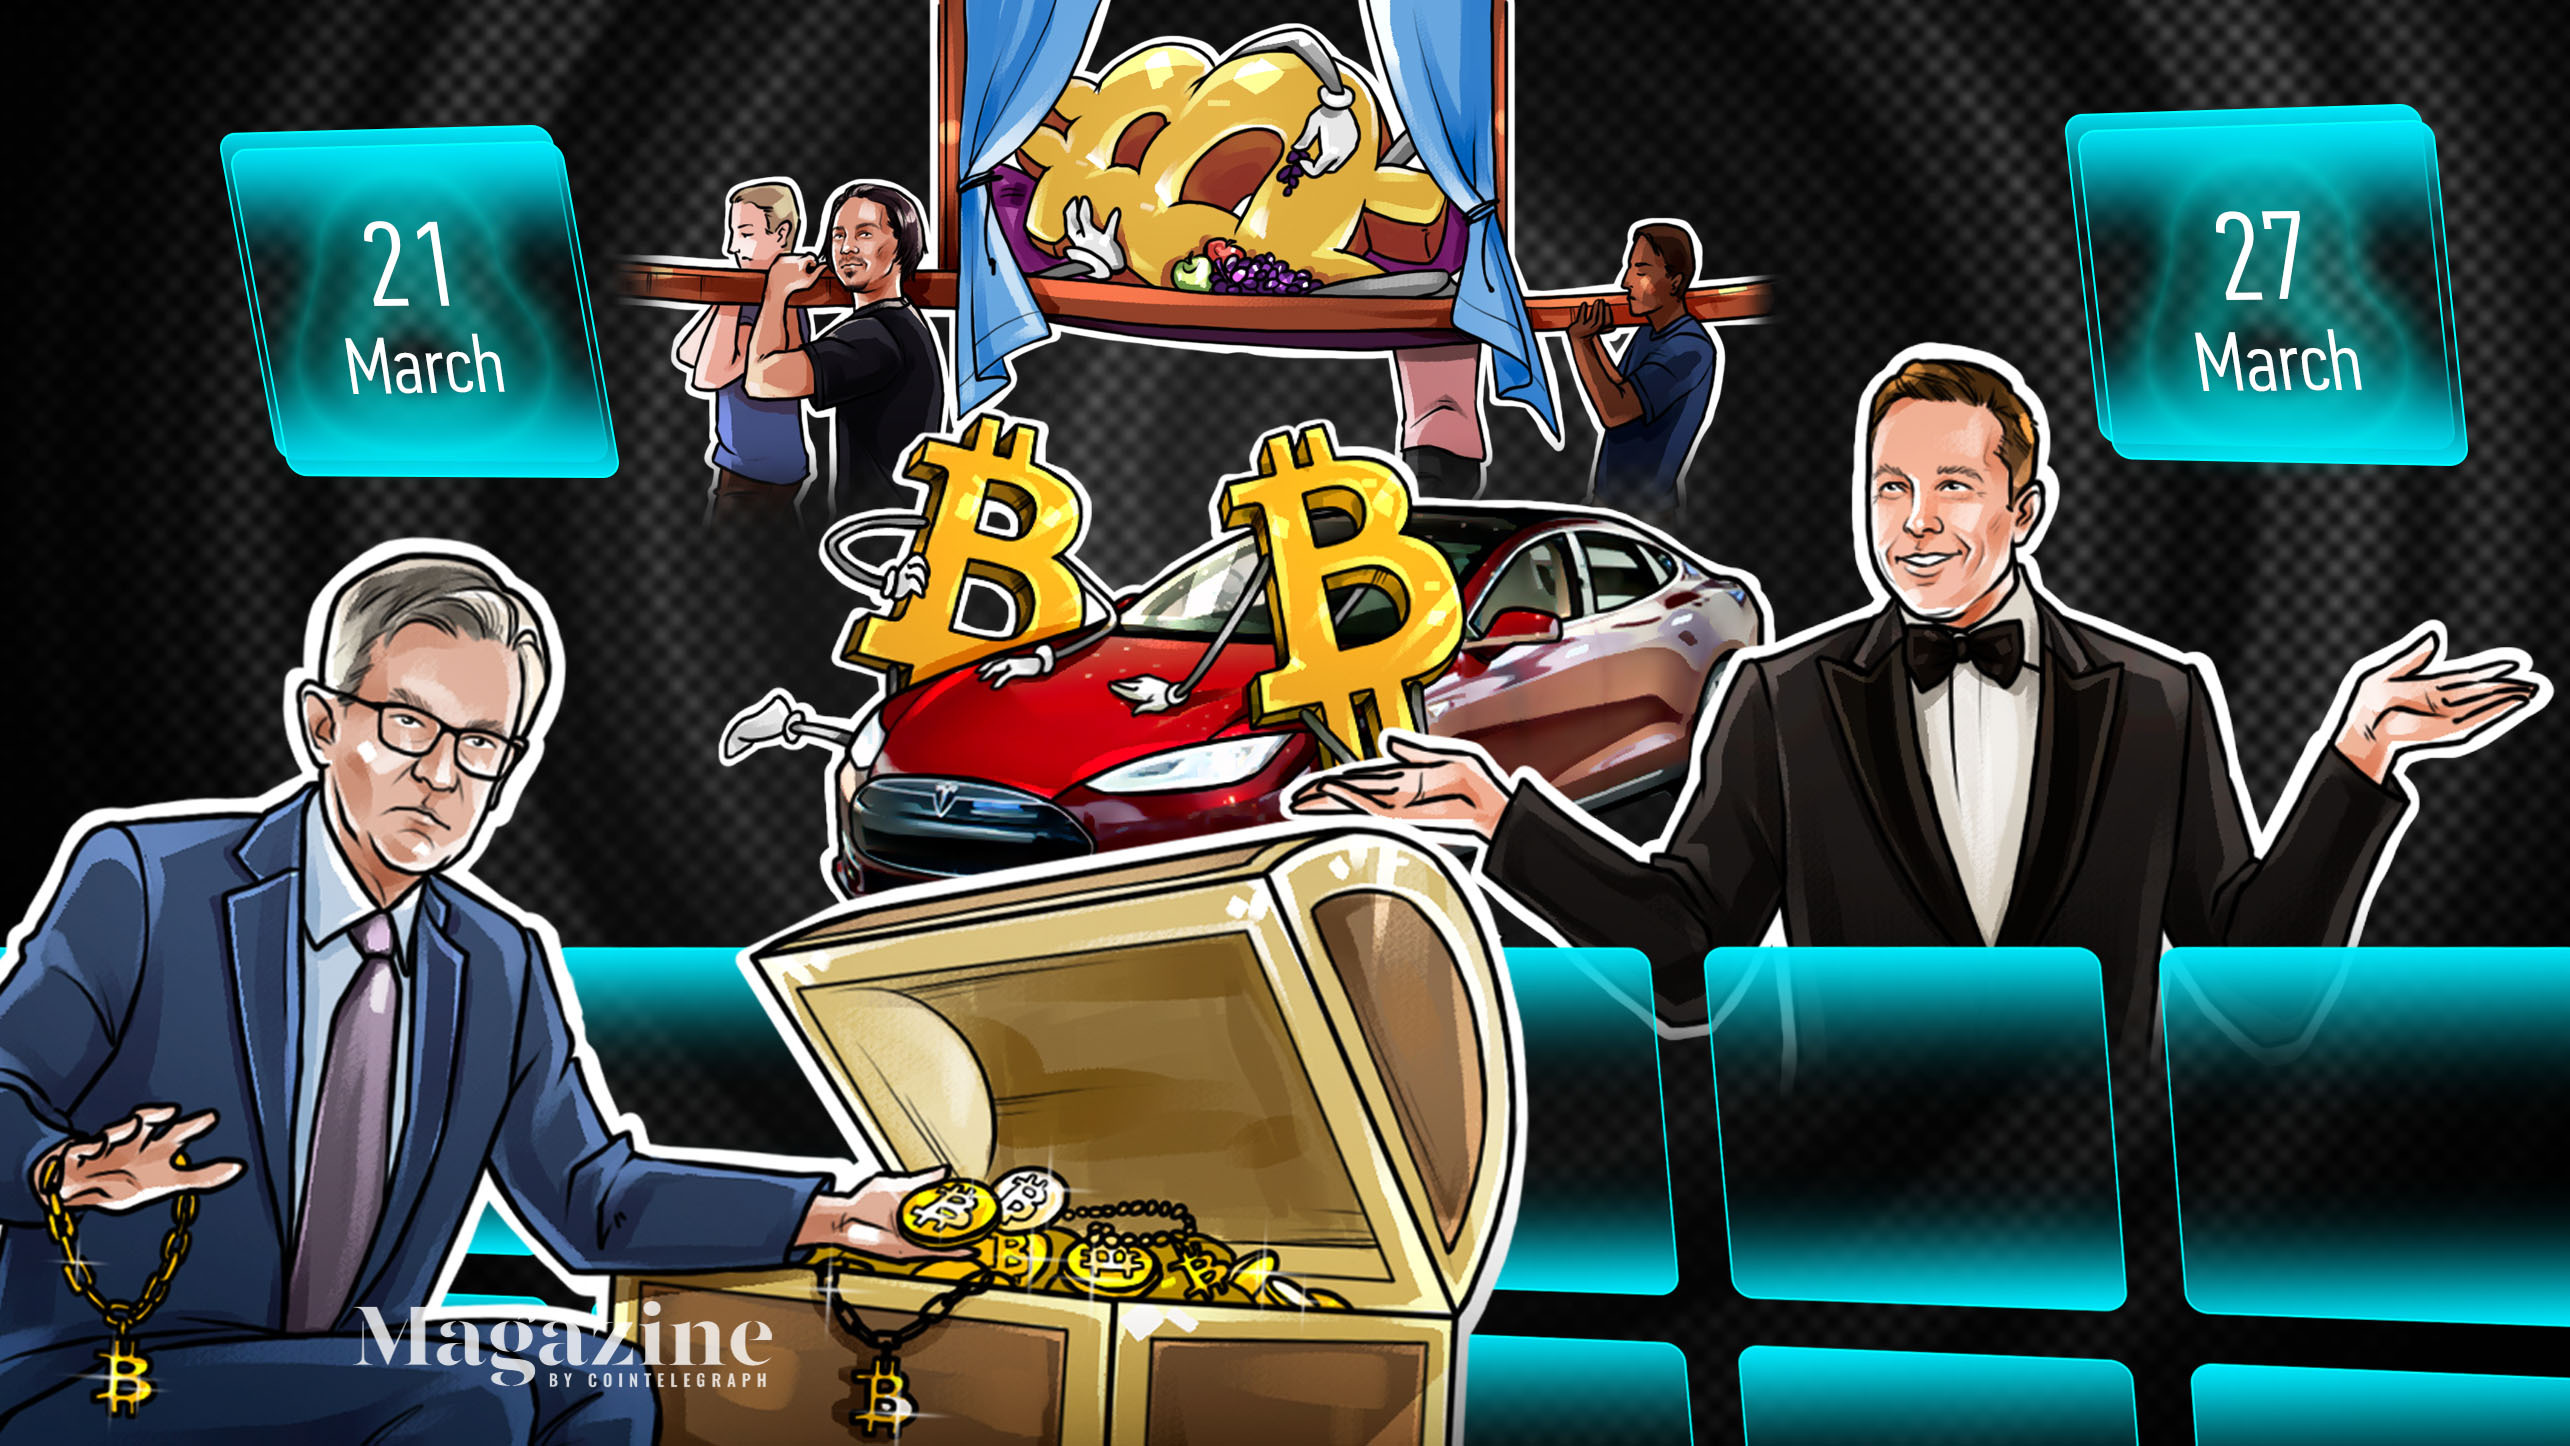 $400K Bitcoin predicted this year, NFT warning, Instagram influencer in trouble: Hodler's Digest, March 21–27